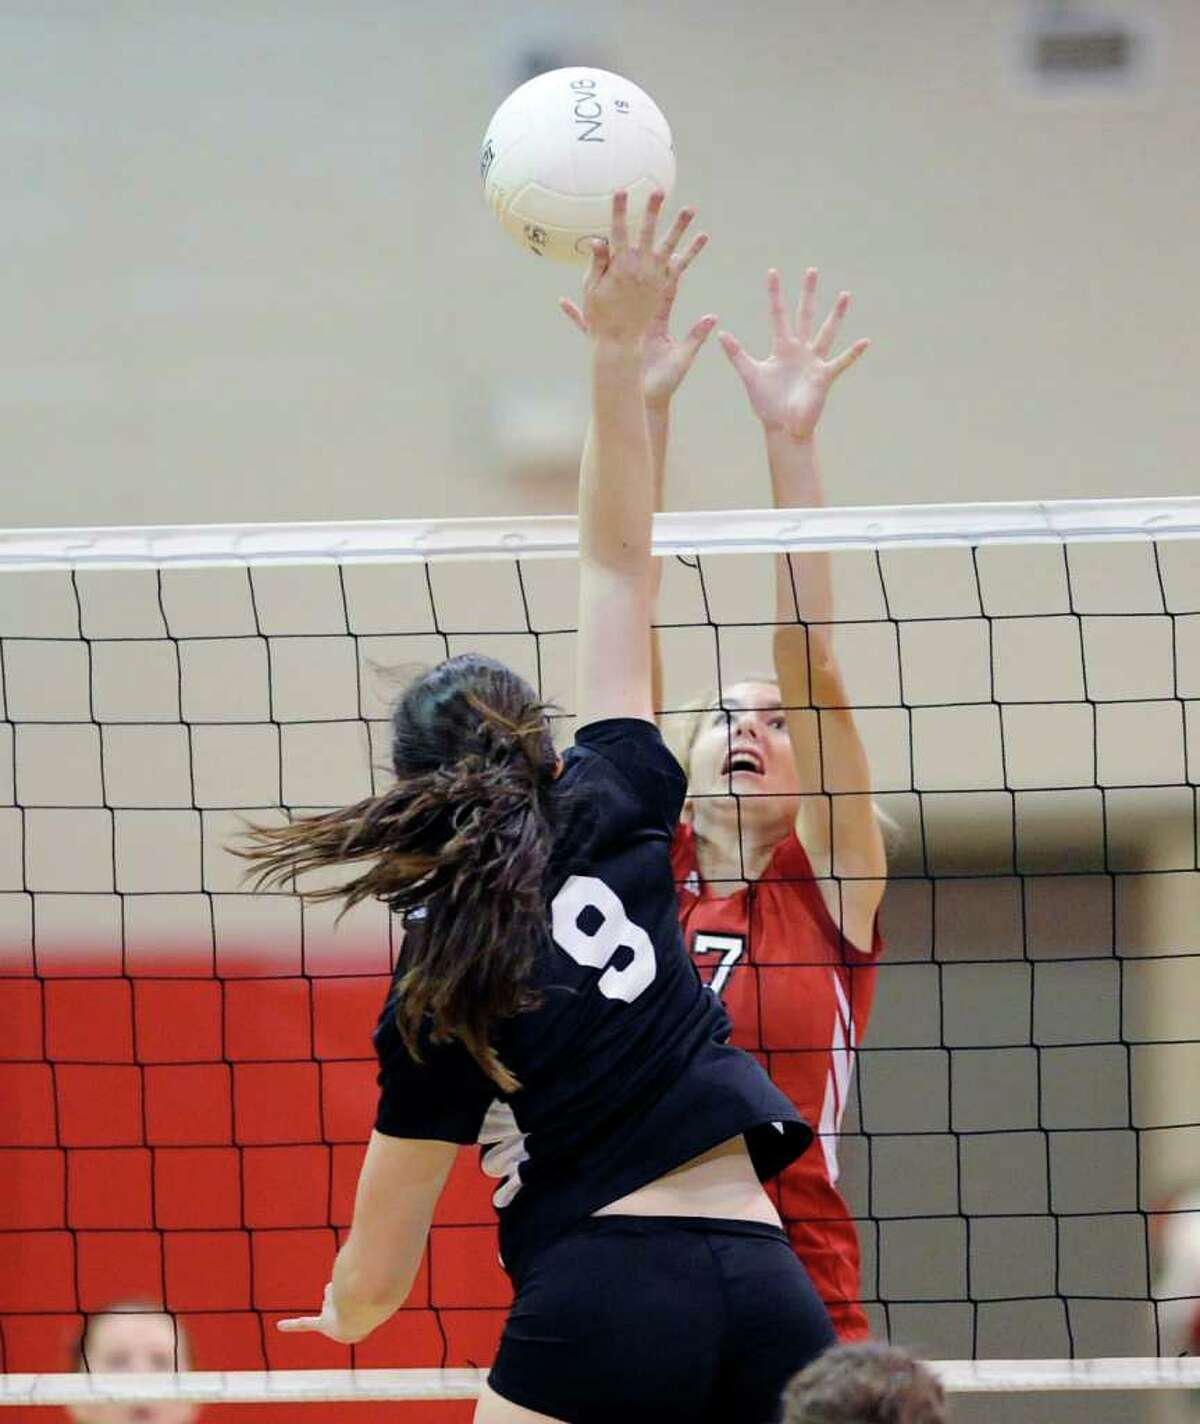 Andrea Mullaney, # 9 of New Canaan High School spikes one past Liza Johnson, # 7 of Greenwich during FCIAC girls volleyball match between Greenwich High School and New Canaan High School at New Canaan High School, Thursday afternoon, Nov. 3, 2011.